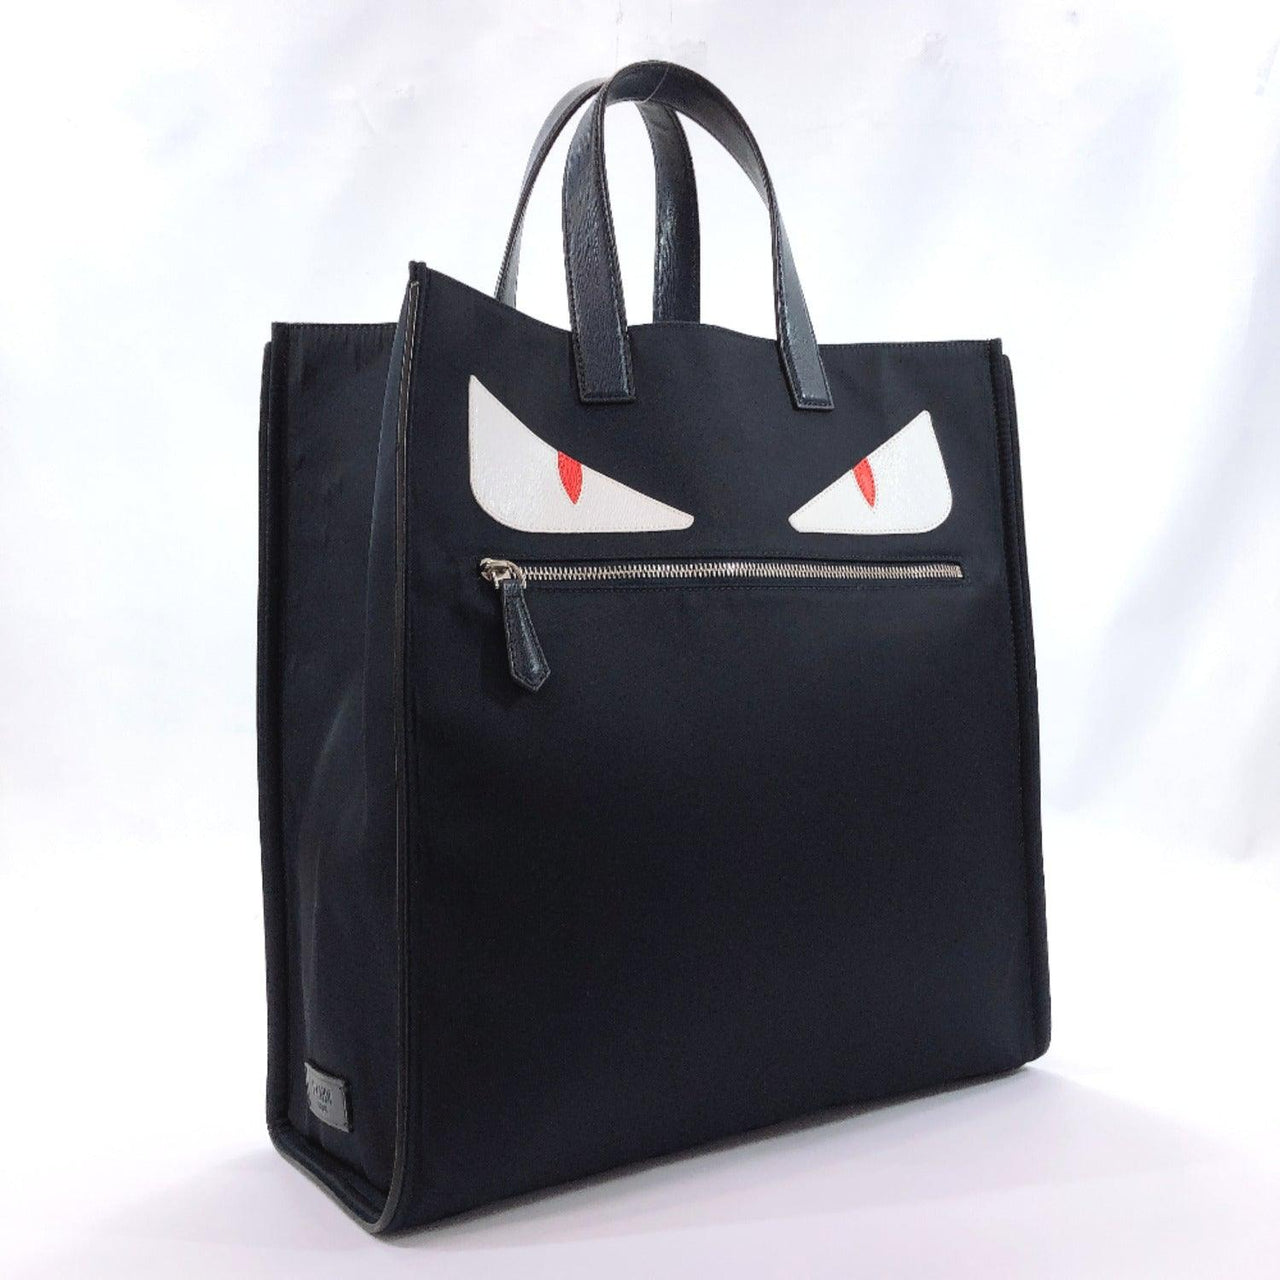 FENDI Tote Bag 7VA367-2WP Monster tote Bugs Nylon/leather Navy unisex Used